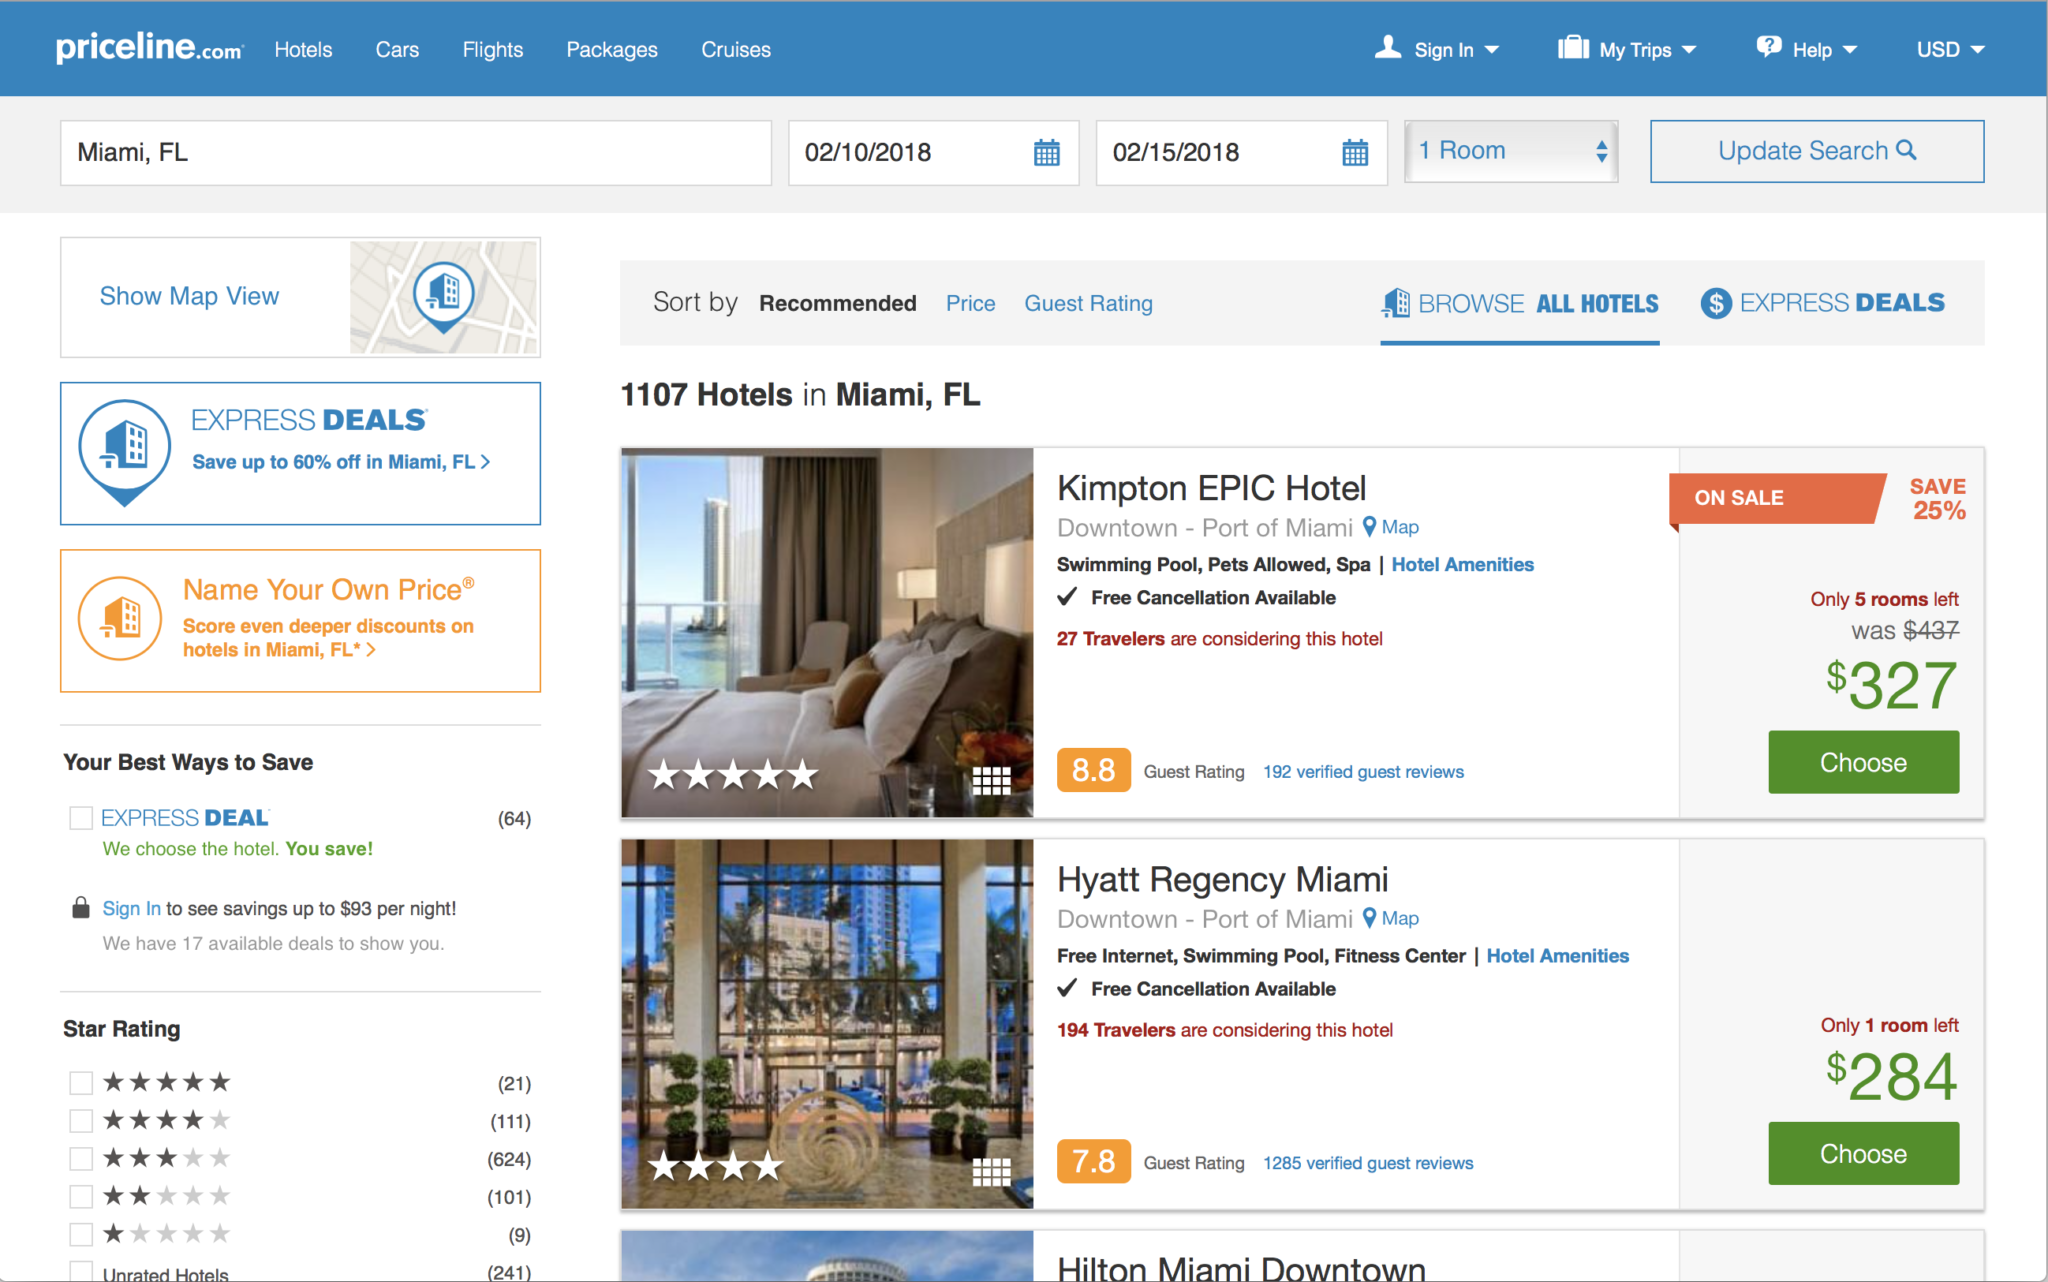 A Complete Guide To Booking Travel With Priceline 2020